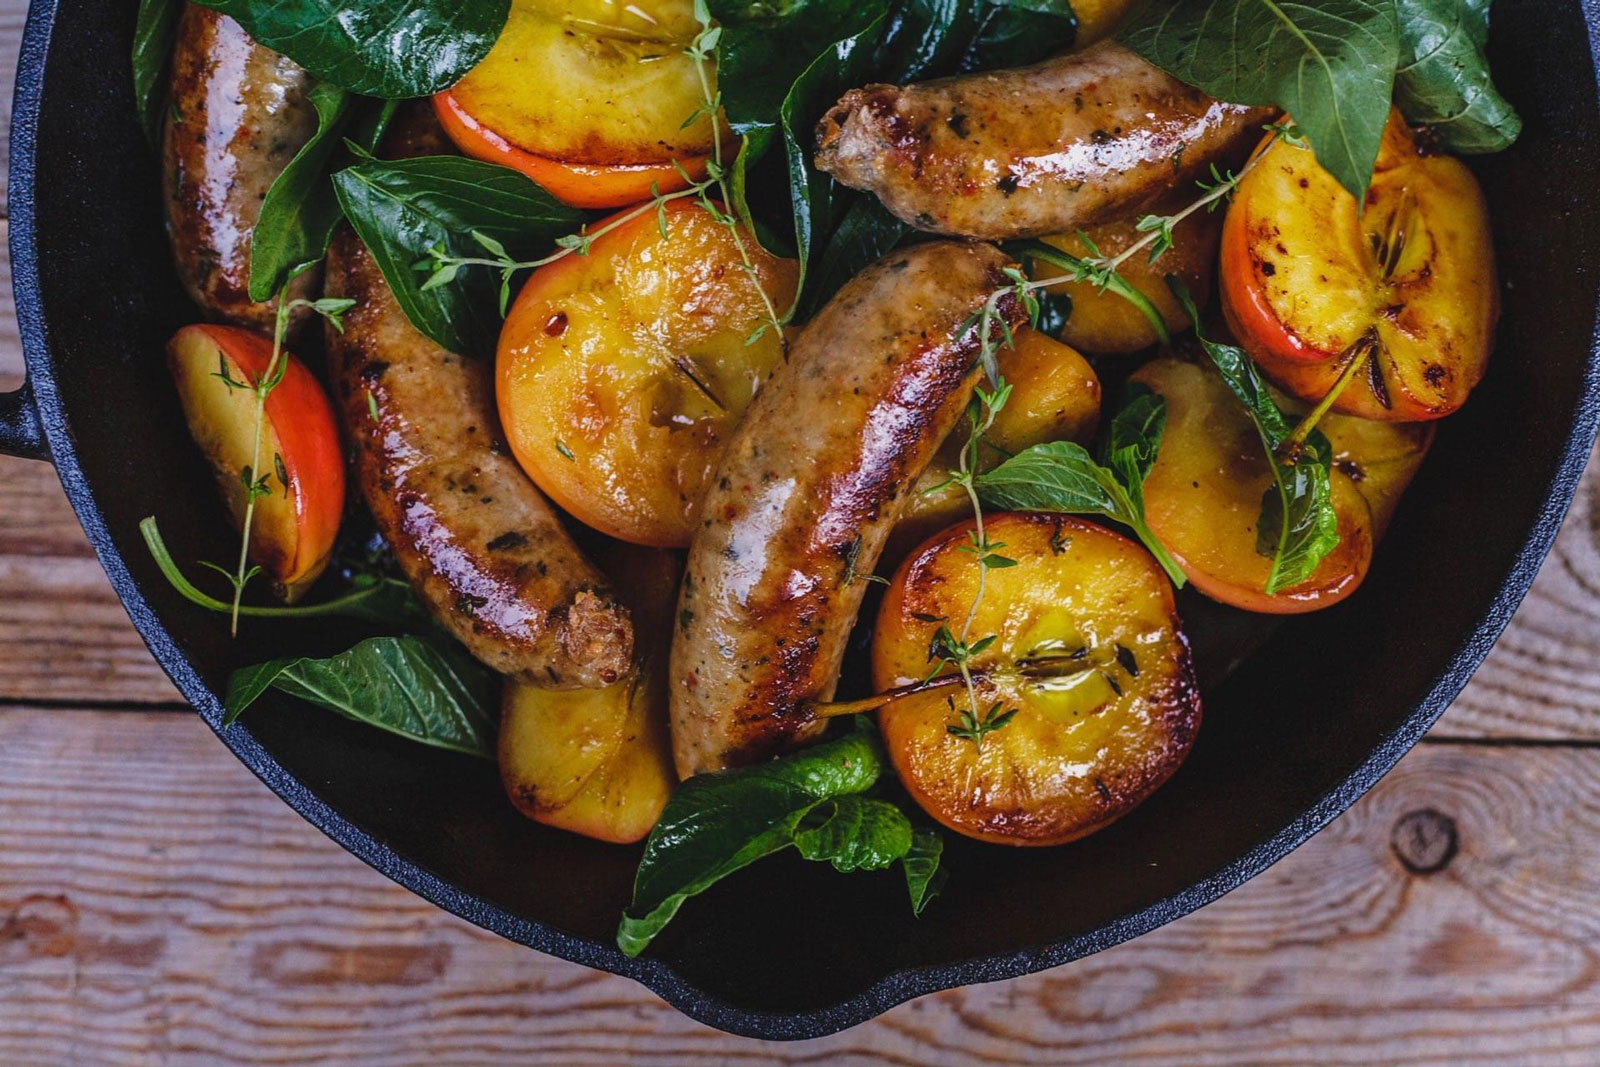 Pan Seared Sausages And Apples With Honey, Thyme And Greens